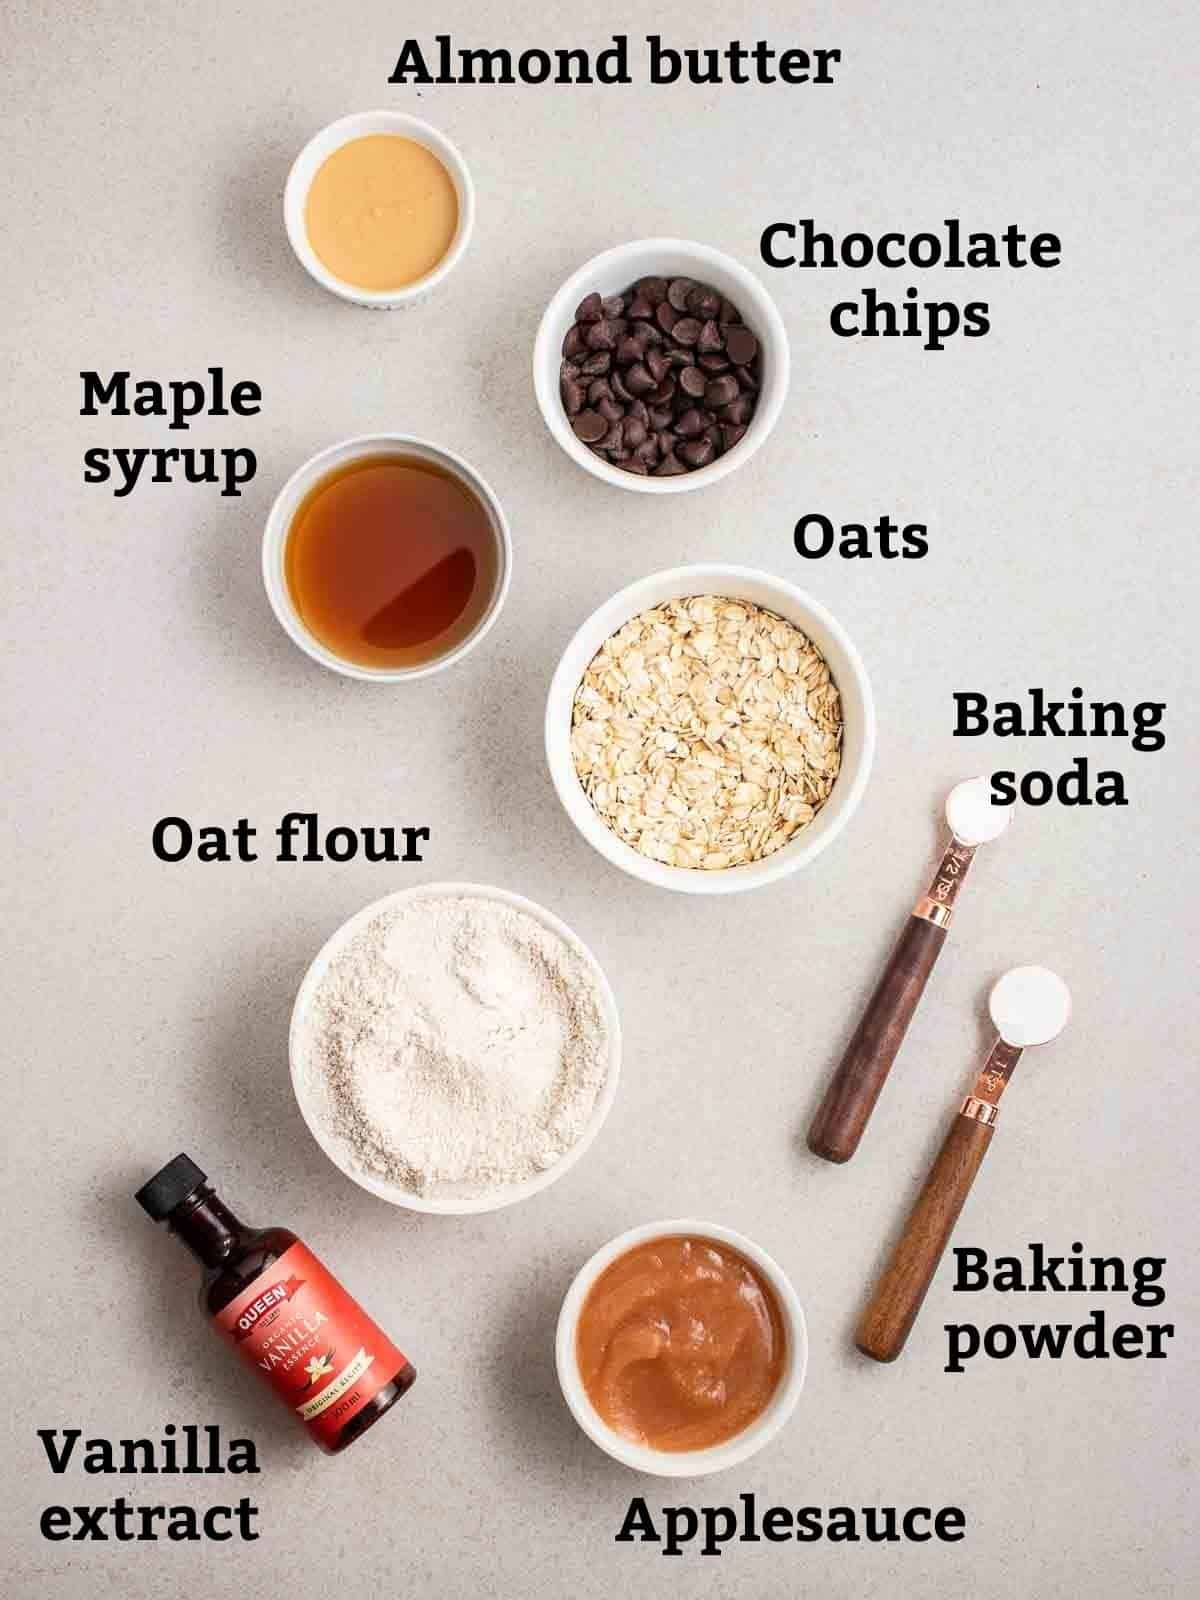 Ingredients needed like flour, oats, applesauce, maple syrup and almond butter on a grey background.